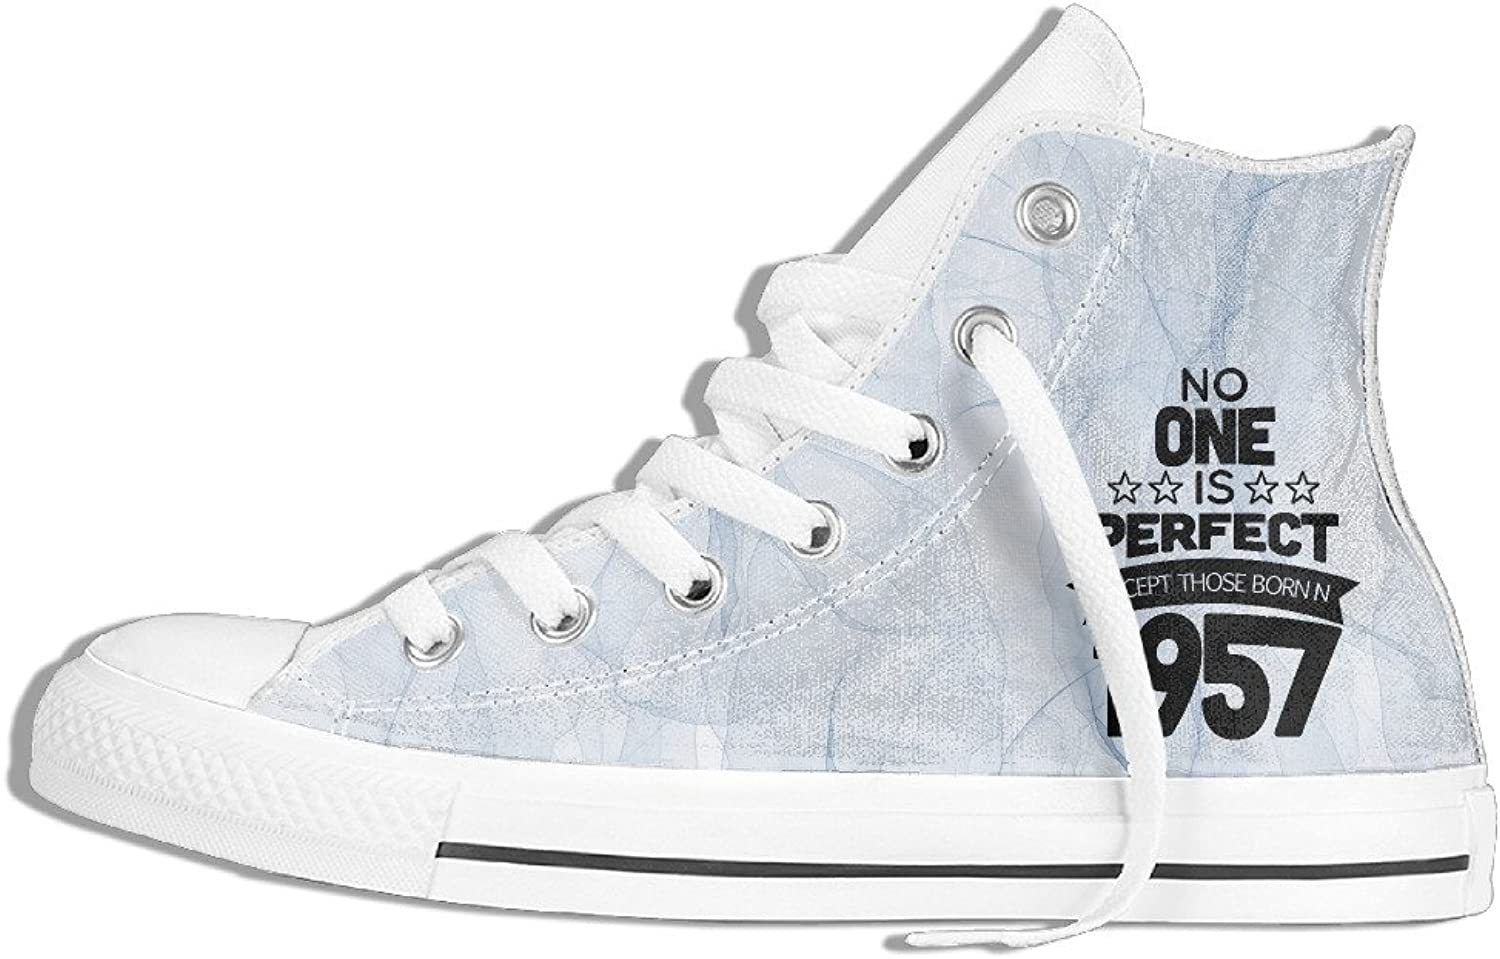 Efbj No One is Perfect 1957 Unisex Casual High Top Canvas Sneaker for Men and Women